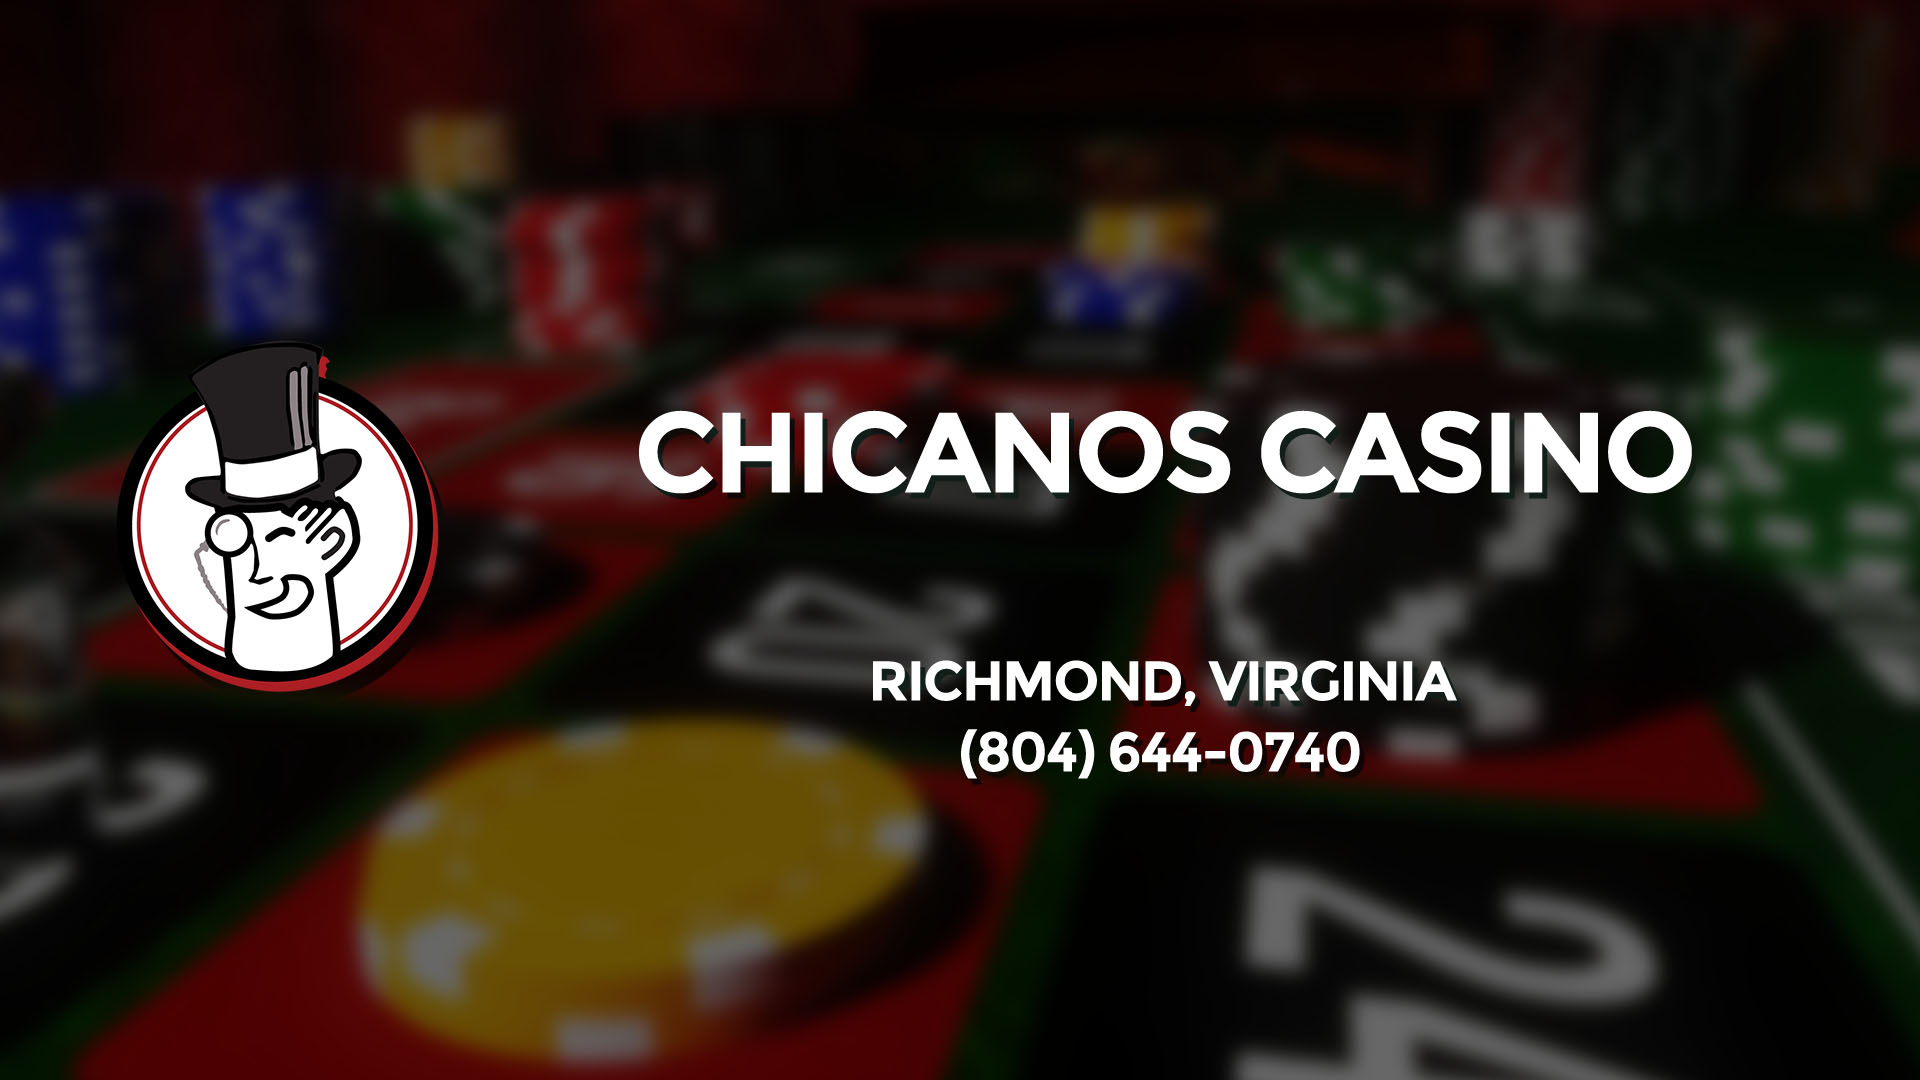 CHICANOS CASINO RICHMOND VA